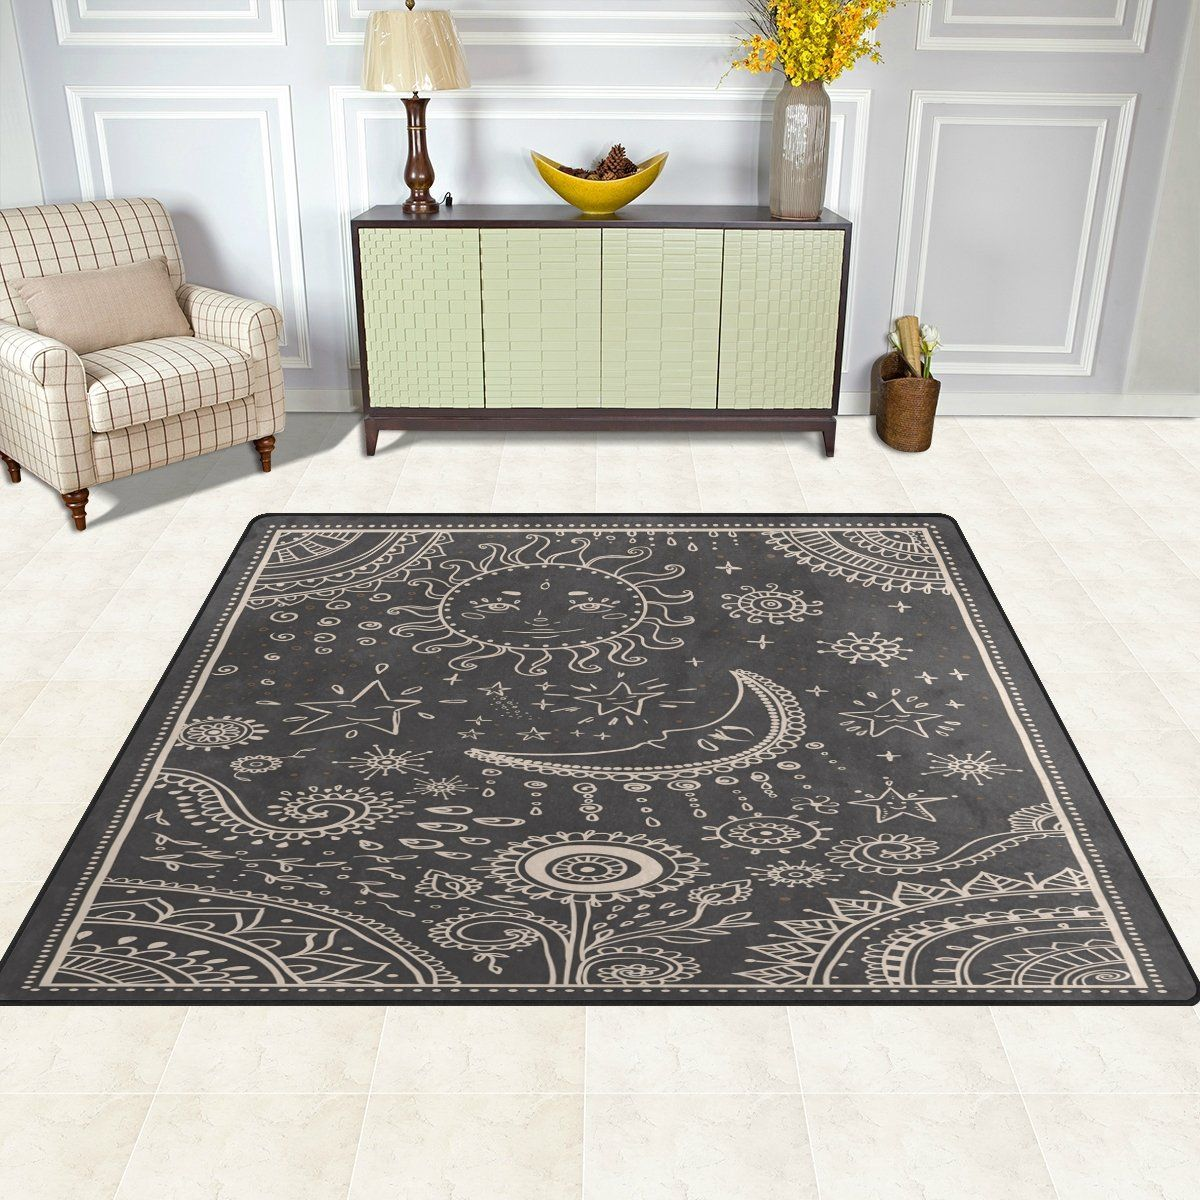 Alaza Vintage Moon Sun Star Sunflower Area Rug Rugs For Living Room Bedroom 53 X 4 Check Out This Great Product Is An Affiliate Link